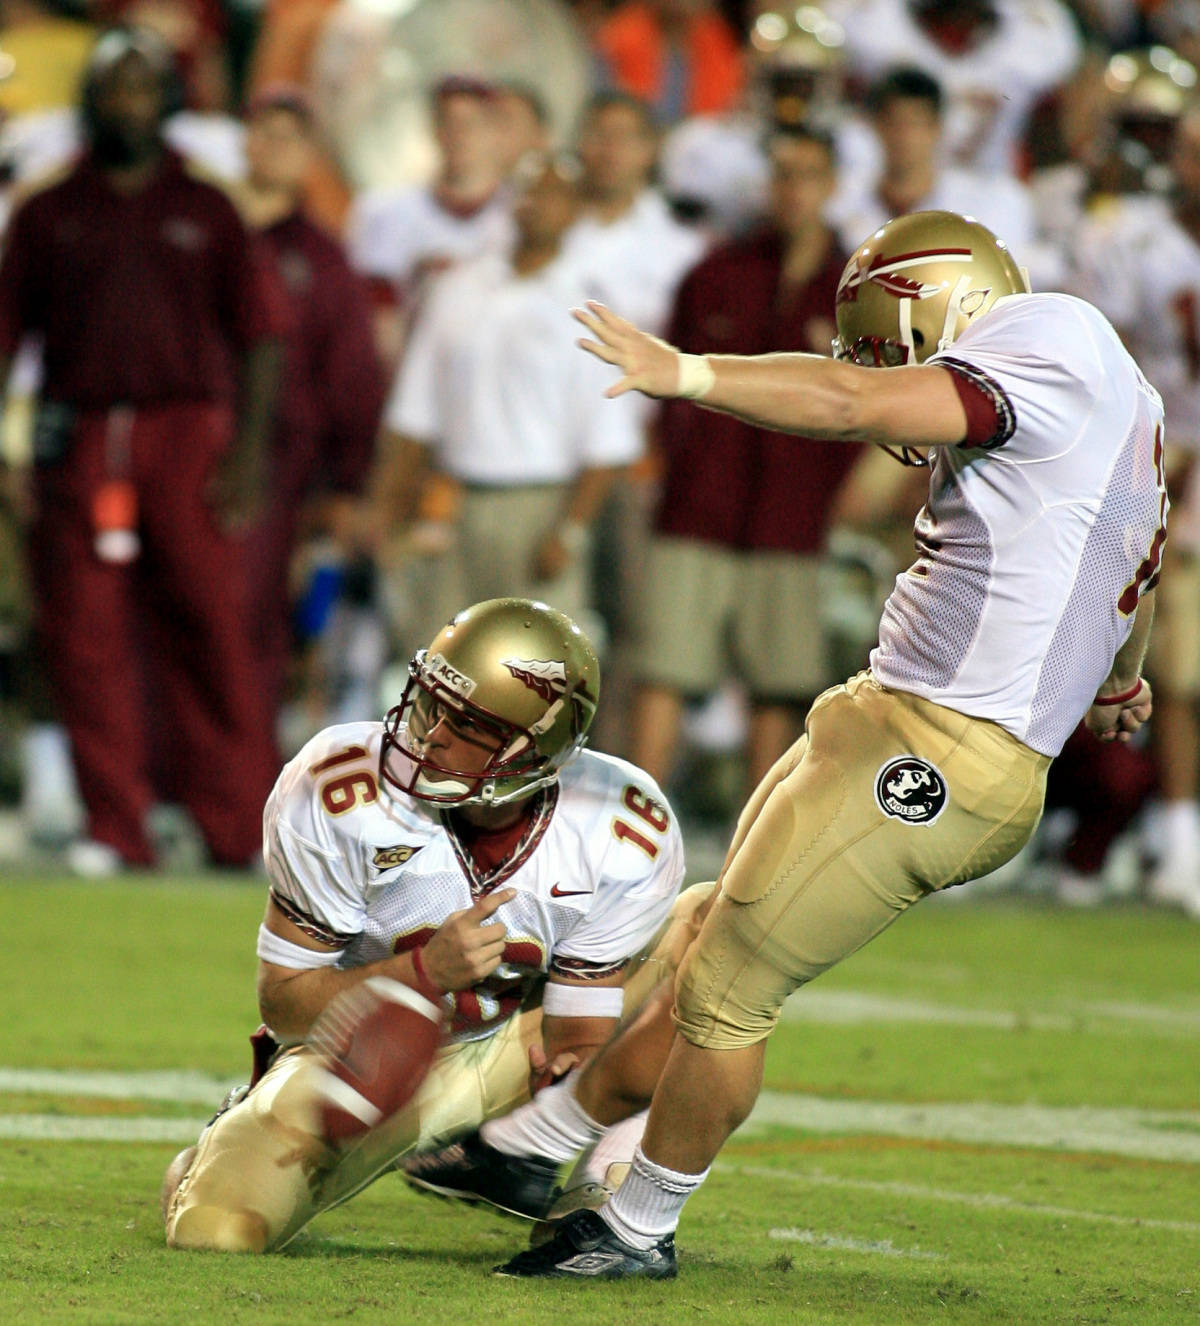 Florida State's Gary Cismesia, right, kicks a 33-yard field goal with 8:06 left in the fourth quarter of football against Miami as Brent Moody holds the ball Monday, Sept. 4, 2006 at the Orange Bowl in Miami. The 11th-ranked Seminoles defeated the No. 12 Hurricanes 13-10. (AP Photo/Luis M. Alvarez)